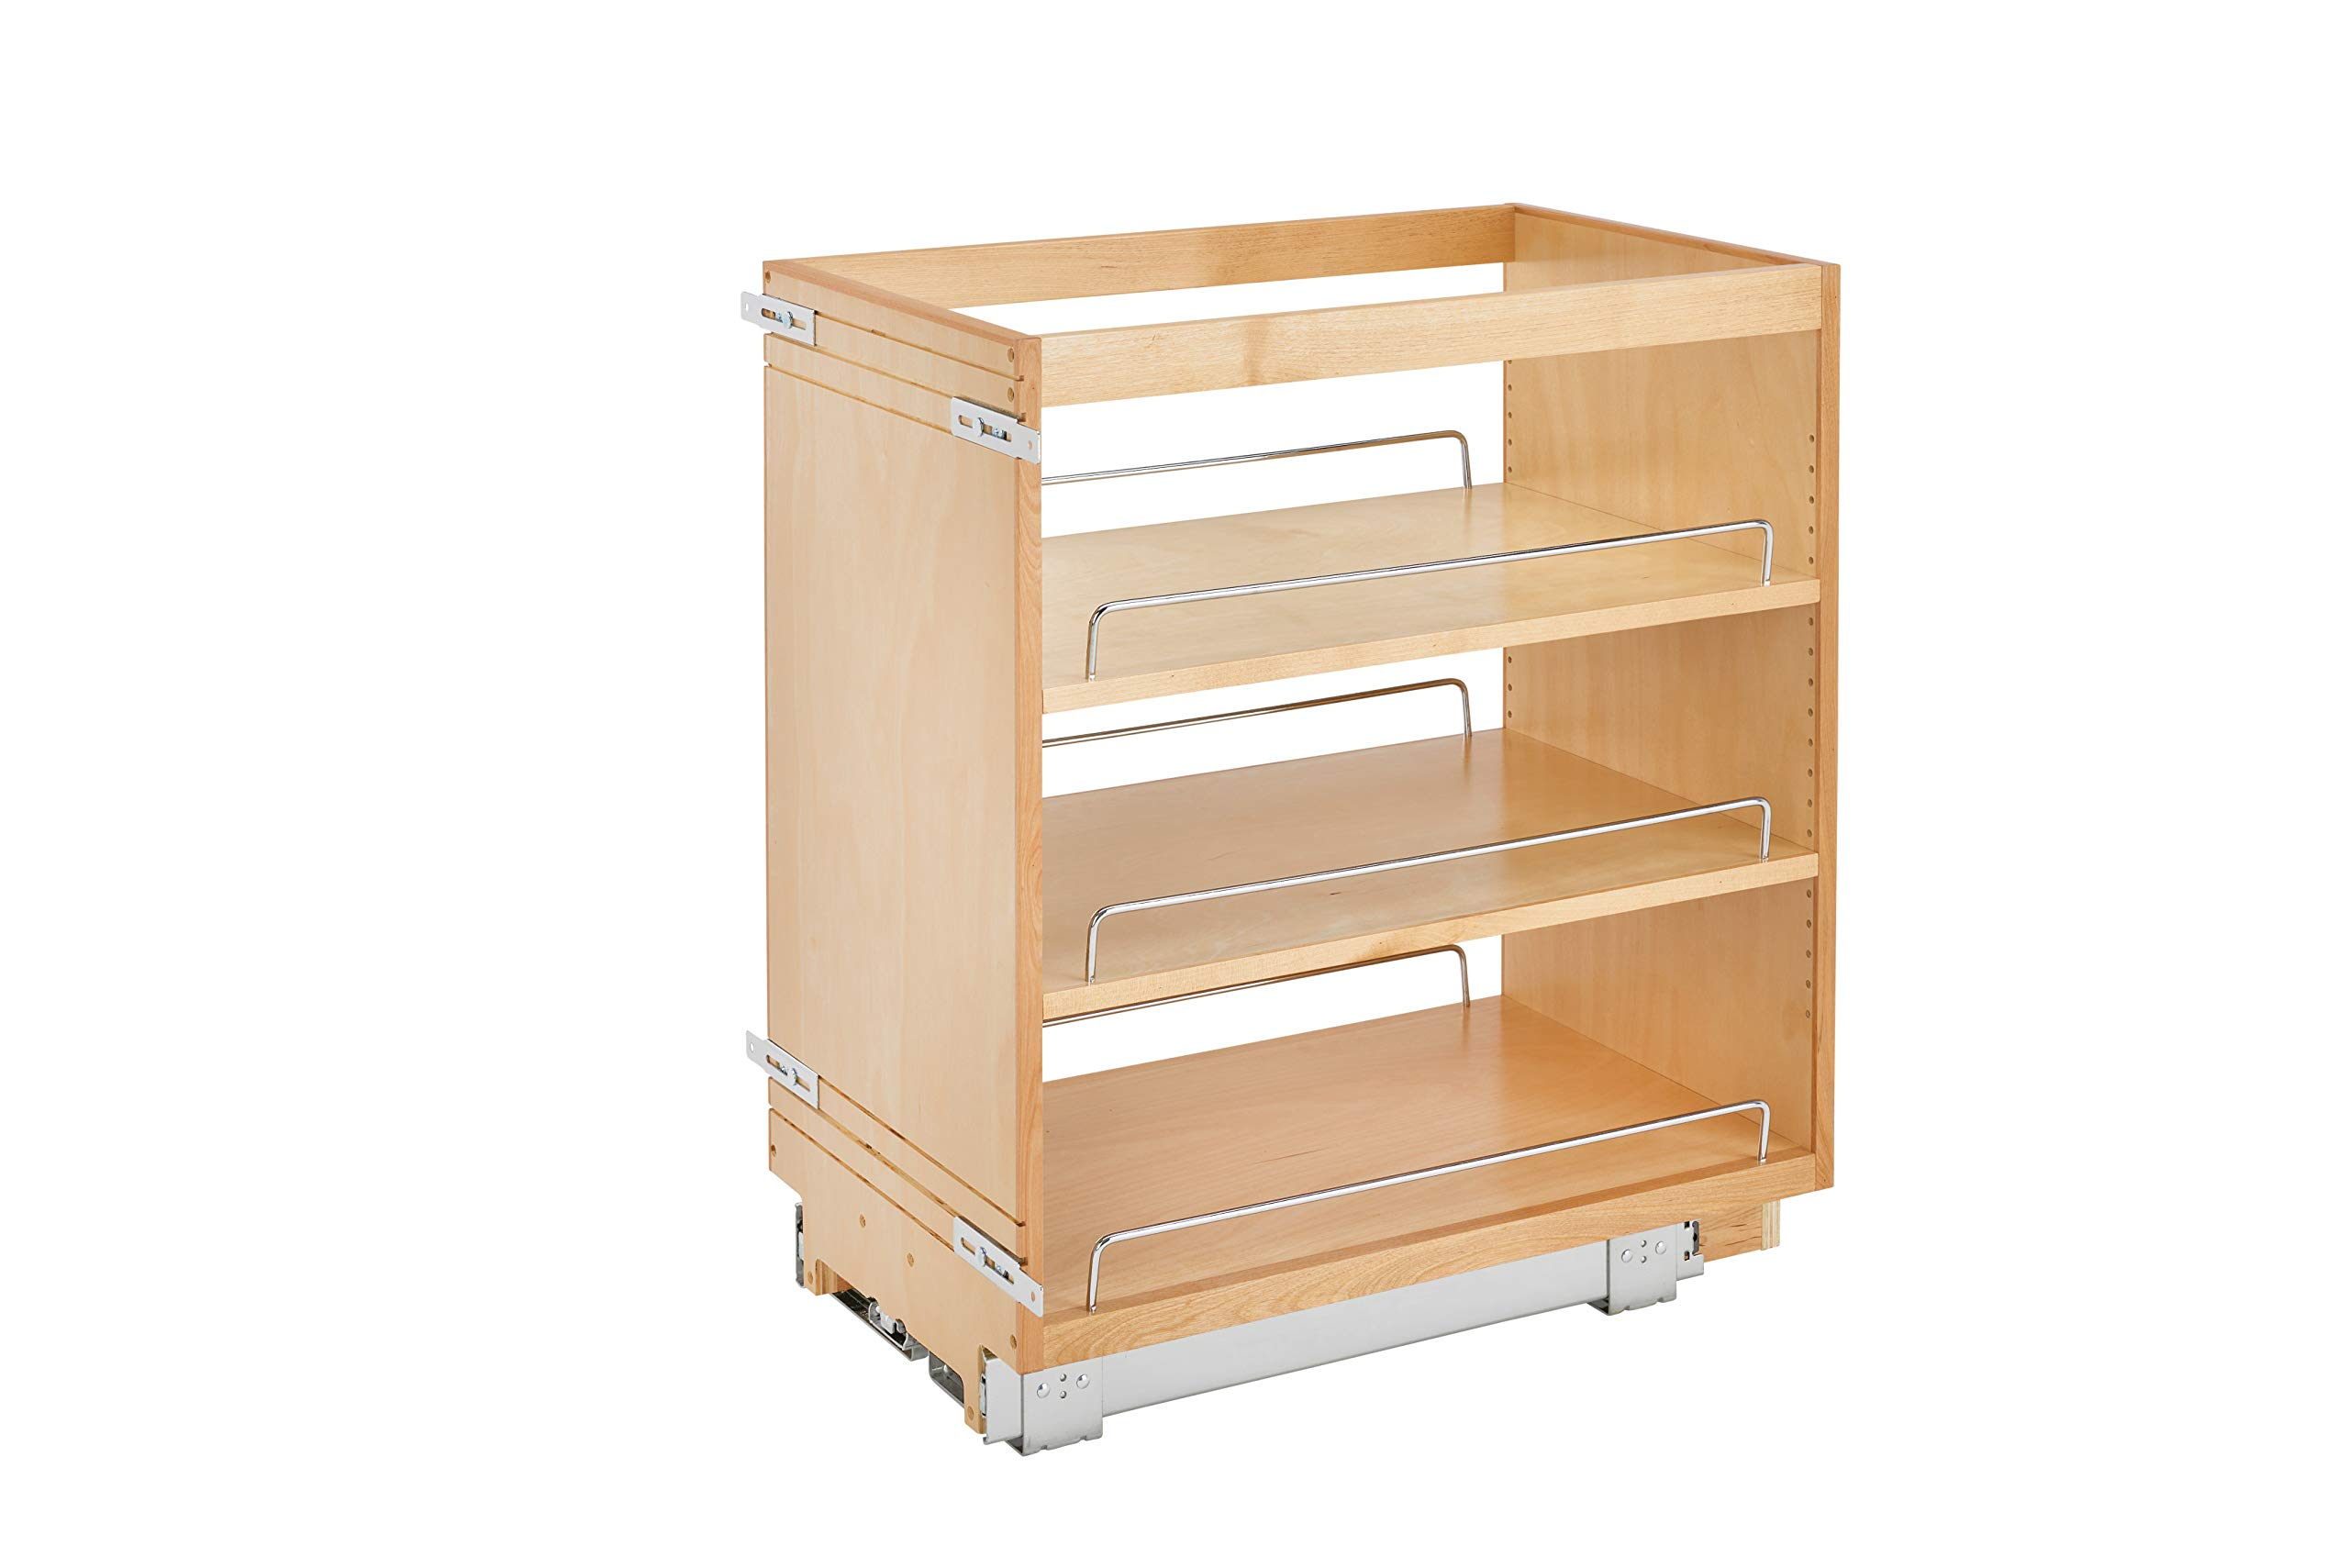 Rev-A-Shelf - 448-BC-14C - 14 in. Pull-Out Wood Base Cabinet Organizer by Rev-A-Shelf